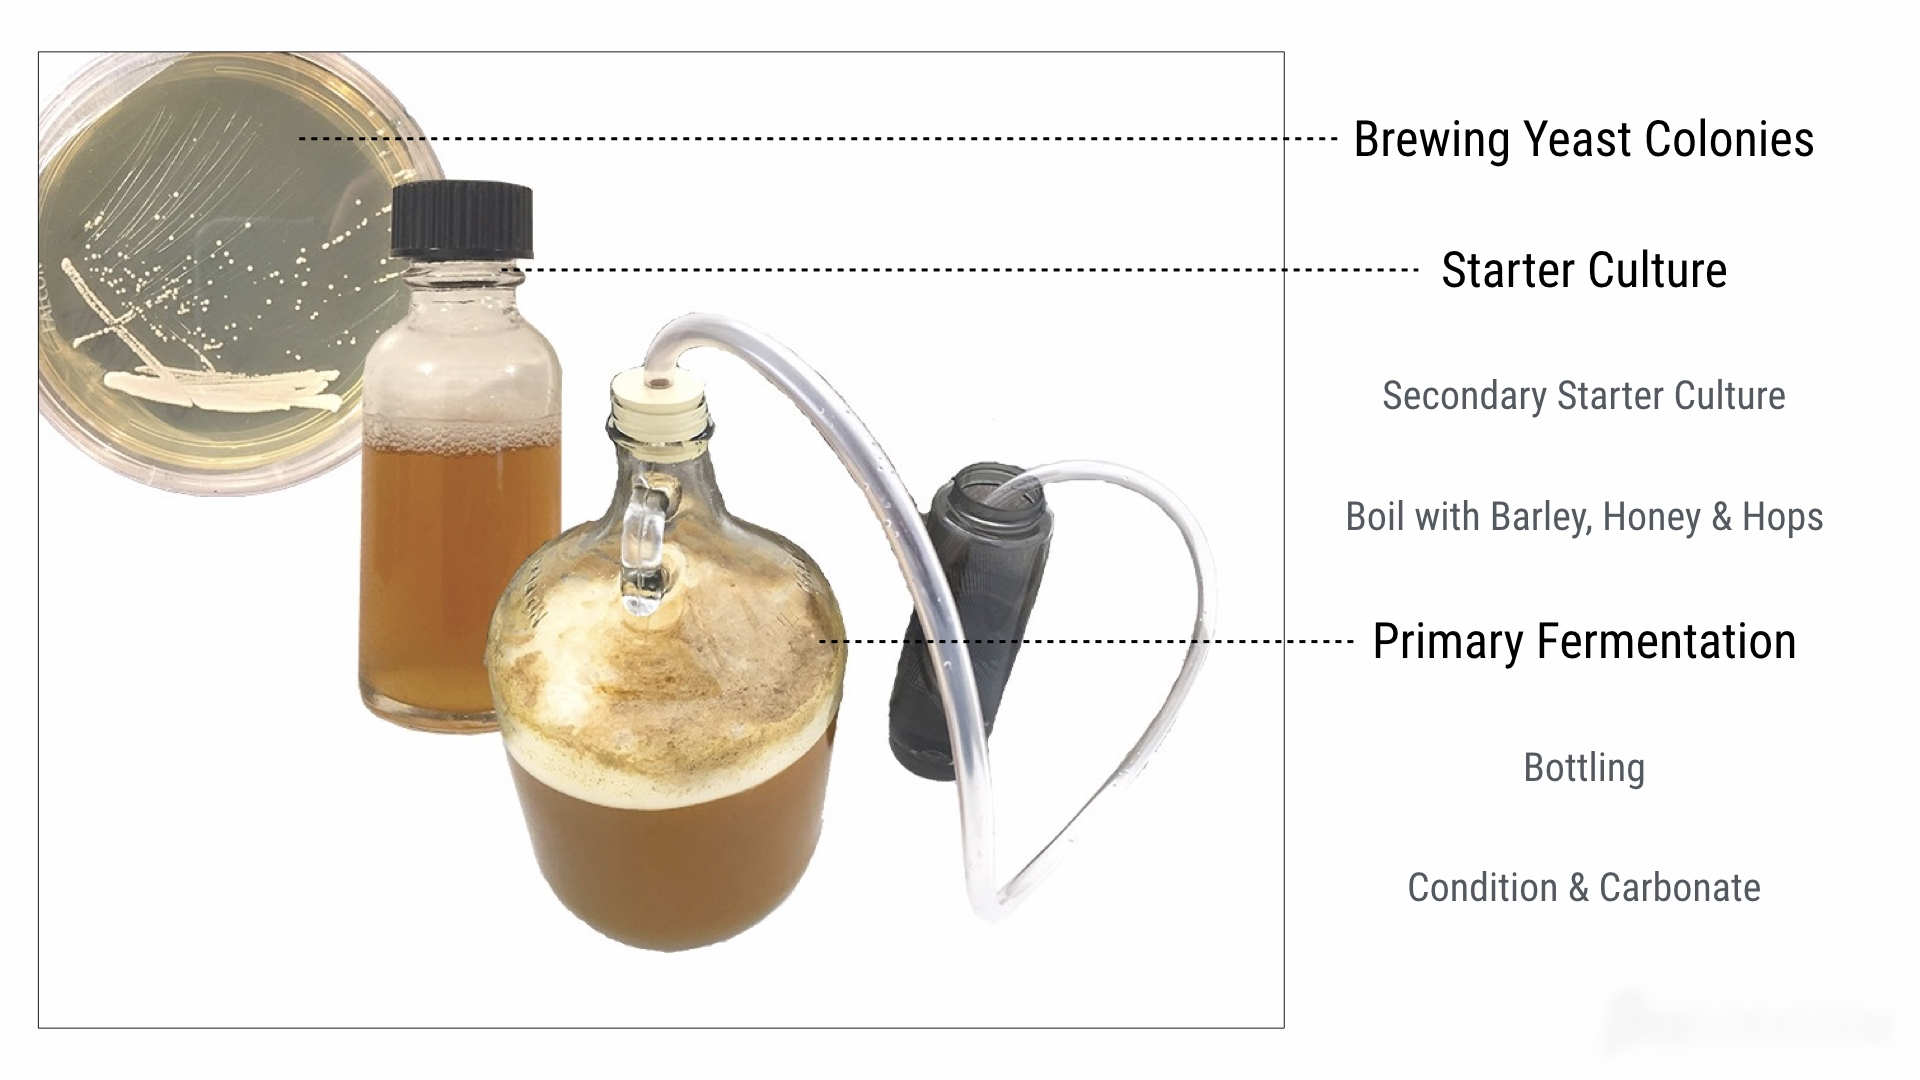 Our beer brewing process thus far with yeast strains from White Labs.